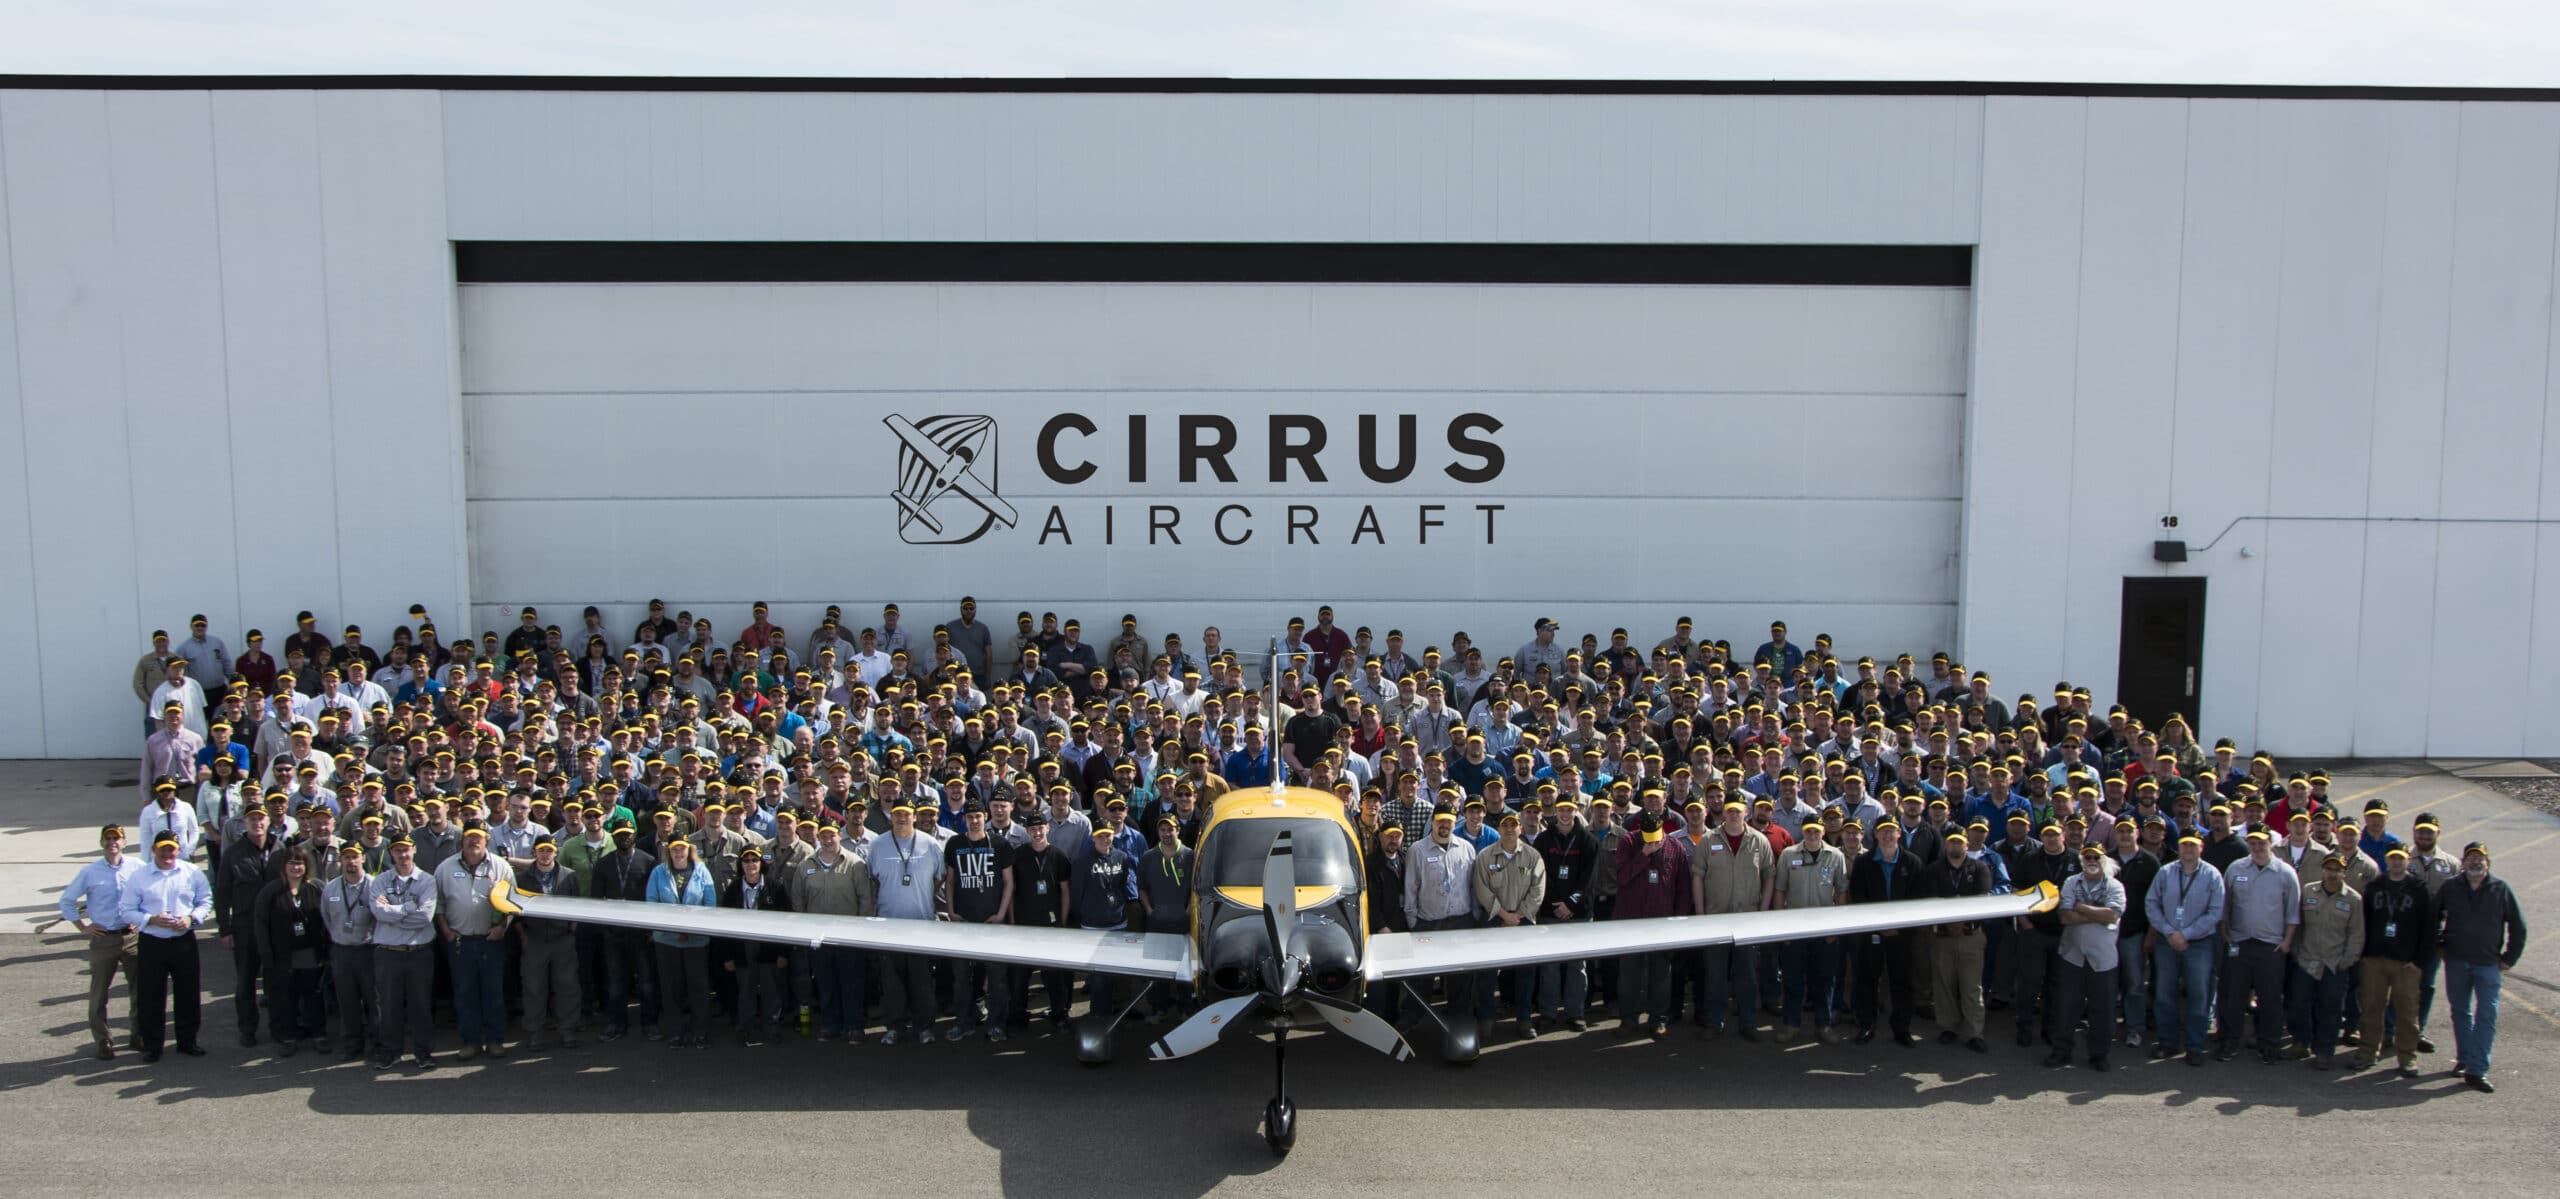 Cirrus Aircraft Celebrates 6,000th Airplane Delivery